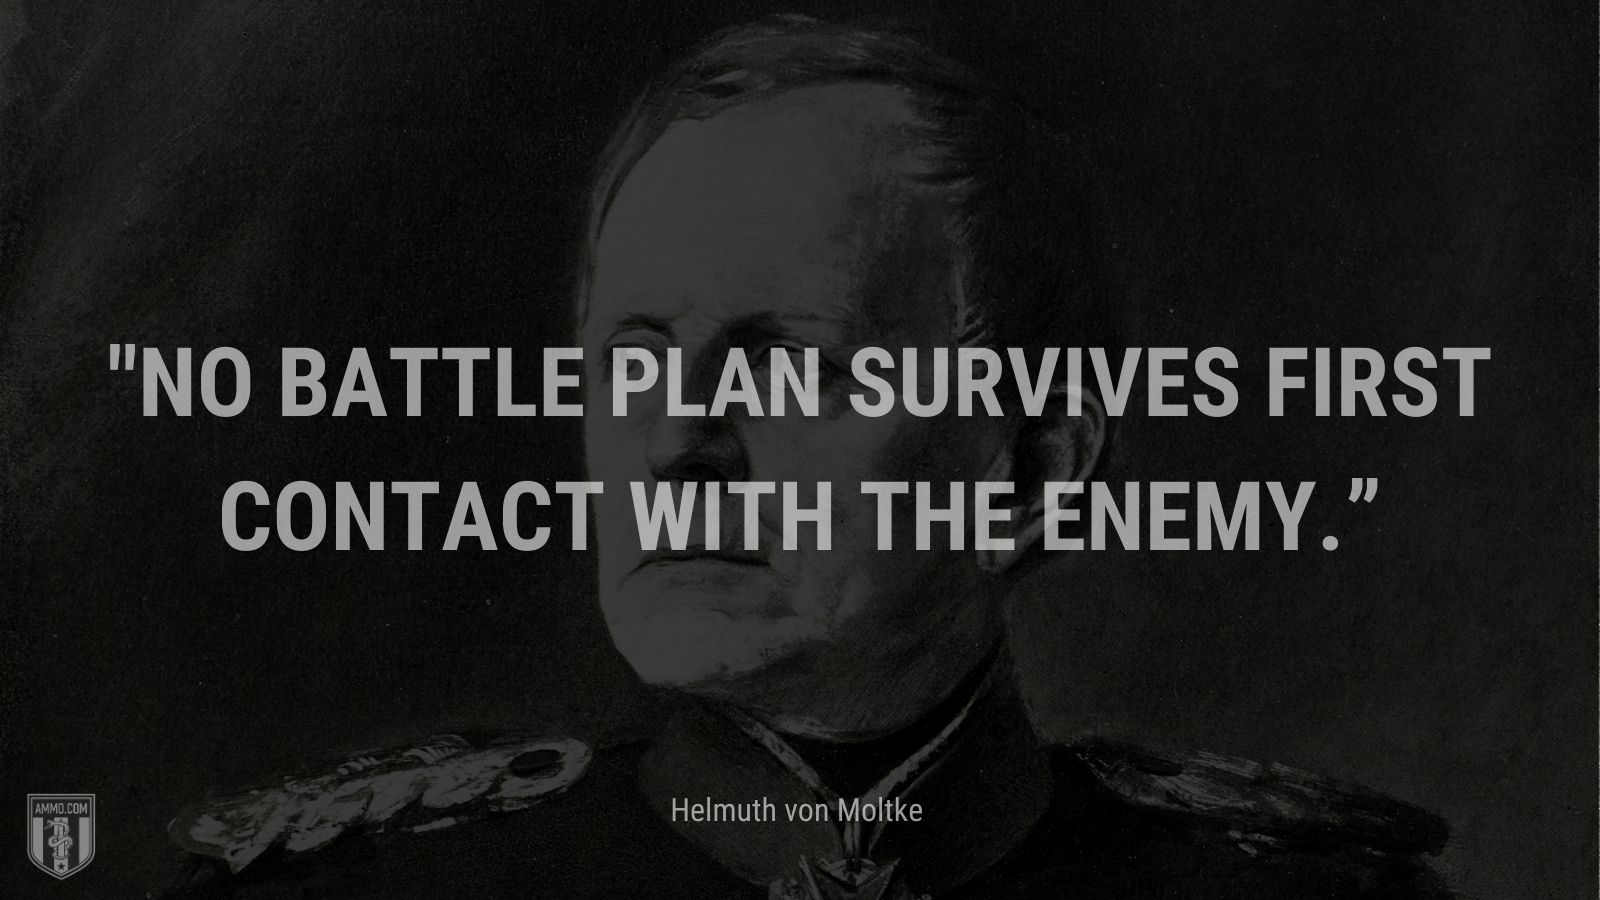 """""""No battle plan survives first contact with the enemy."""" - Helmuth von Moltke"""